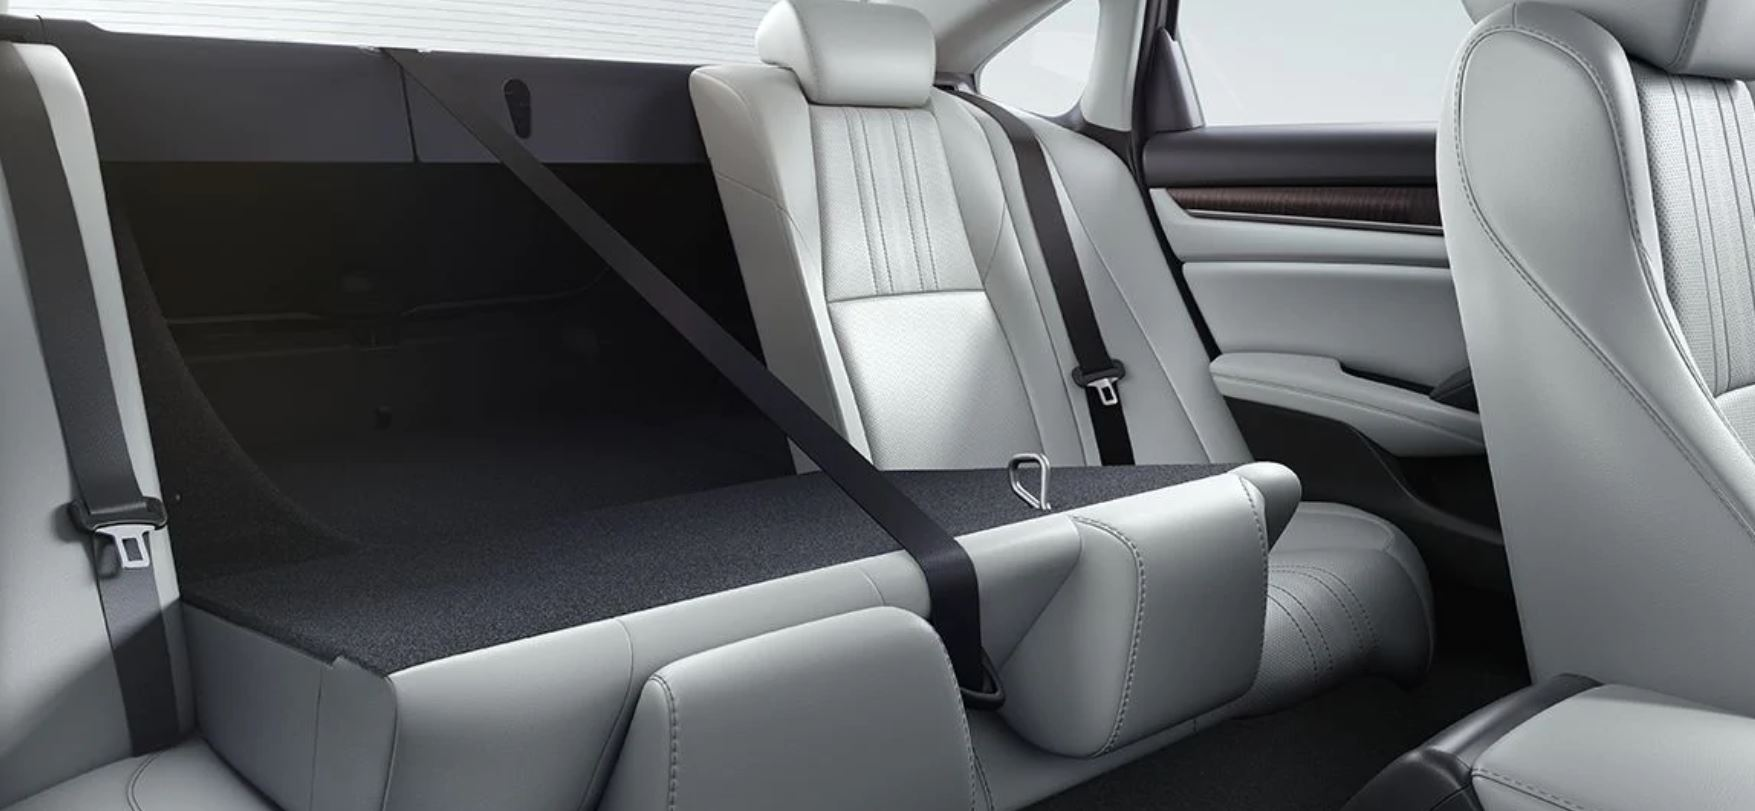 Versatile Interior of the 2020 Accord